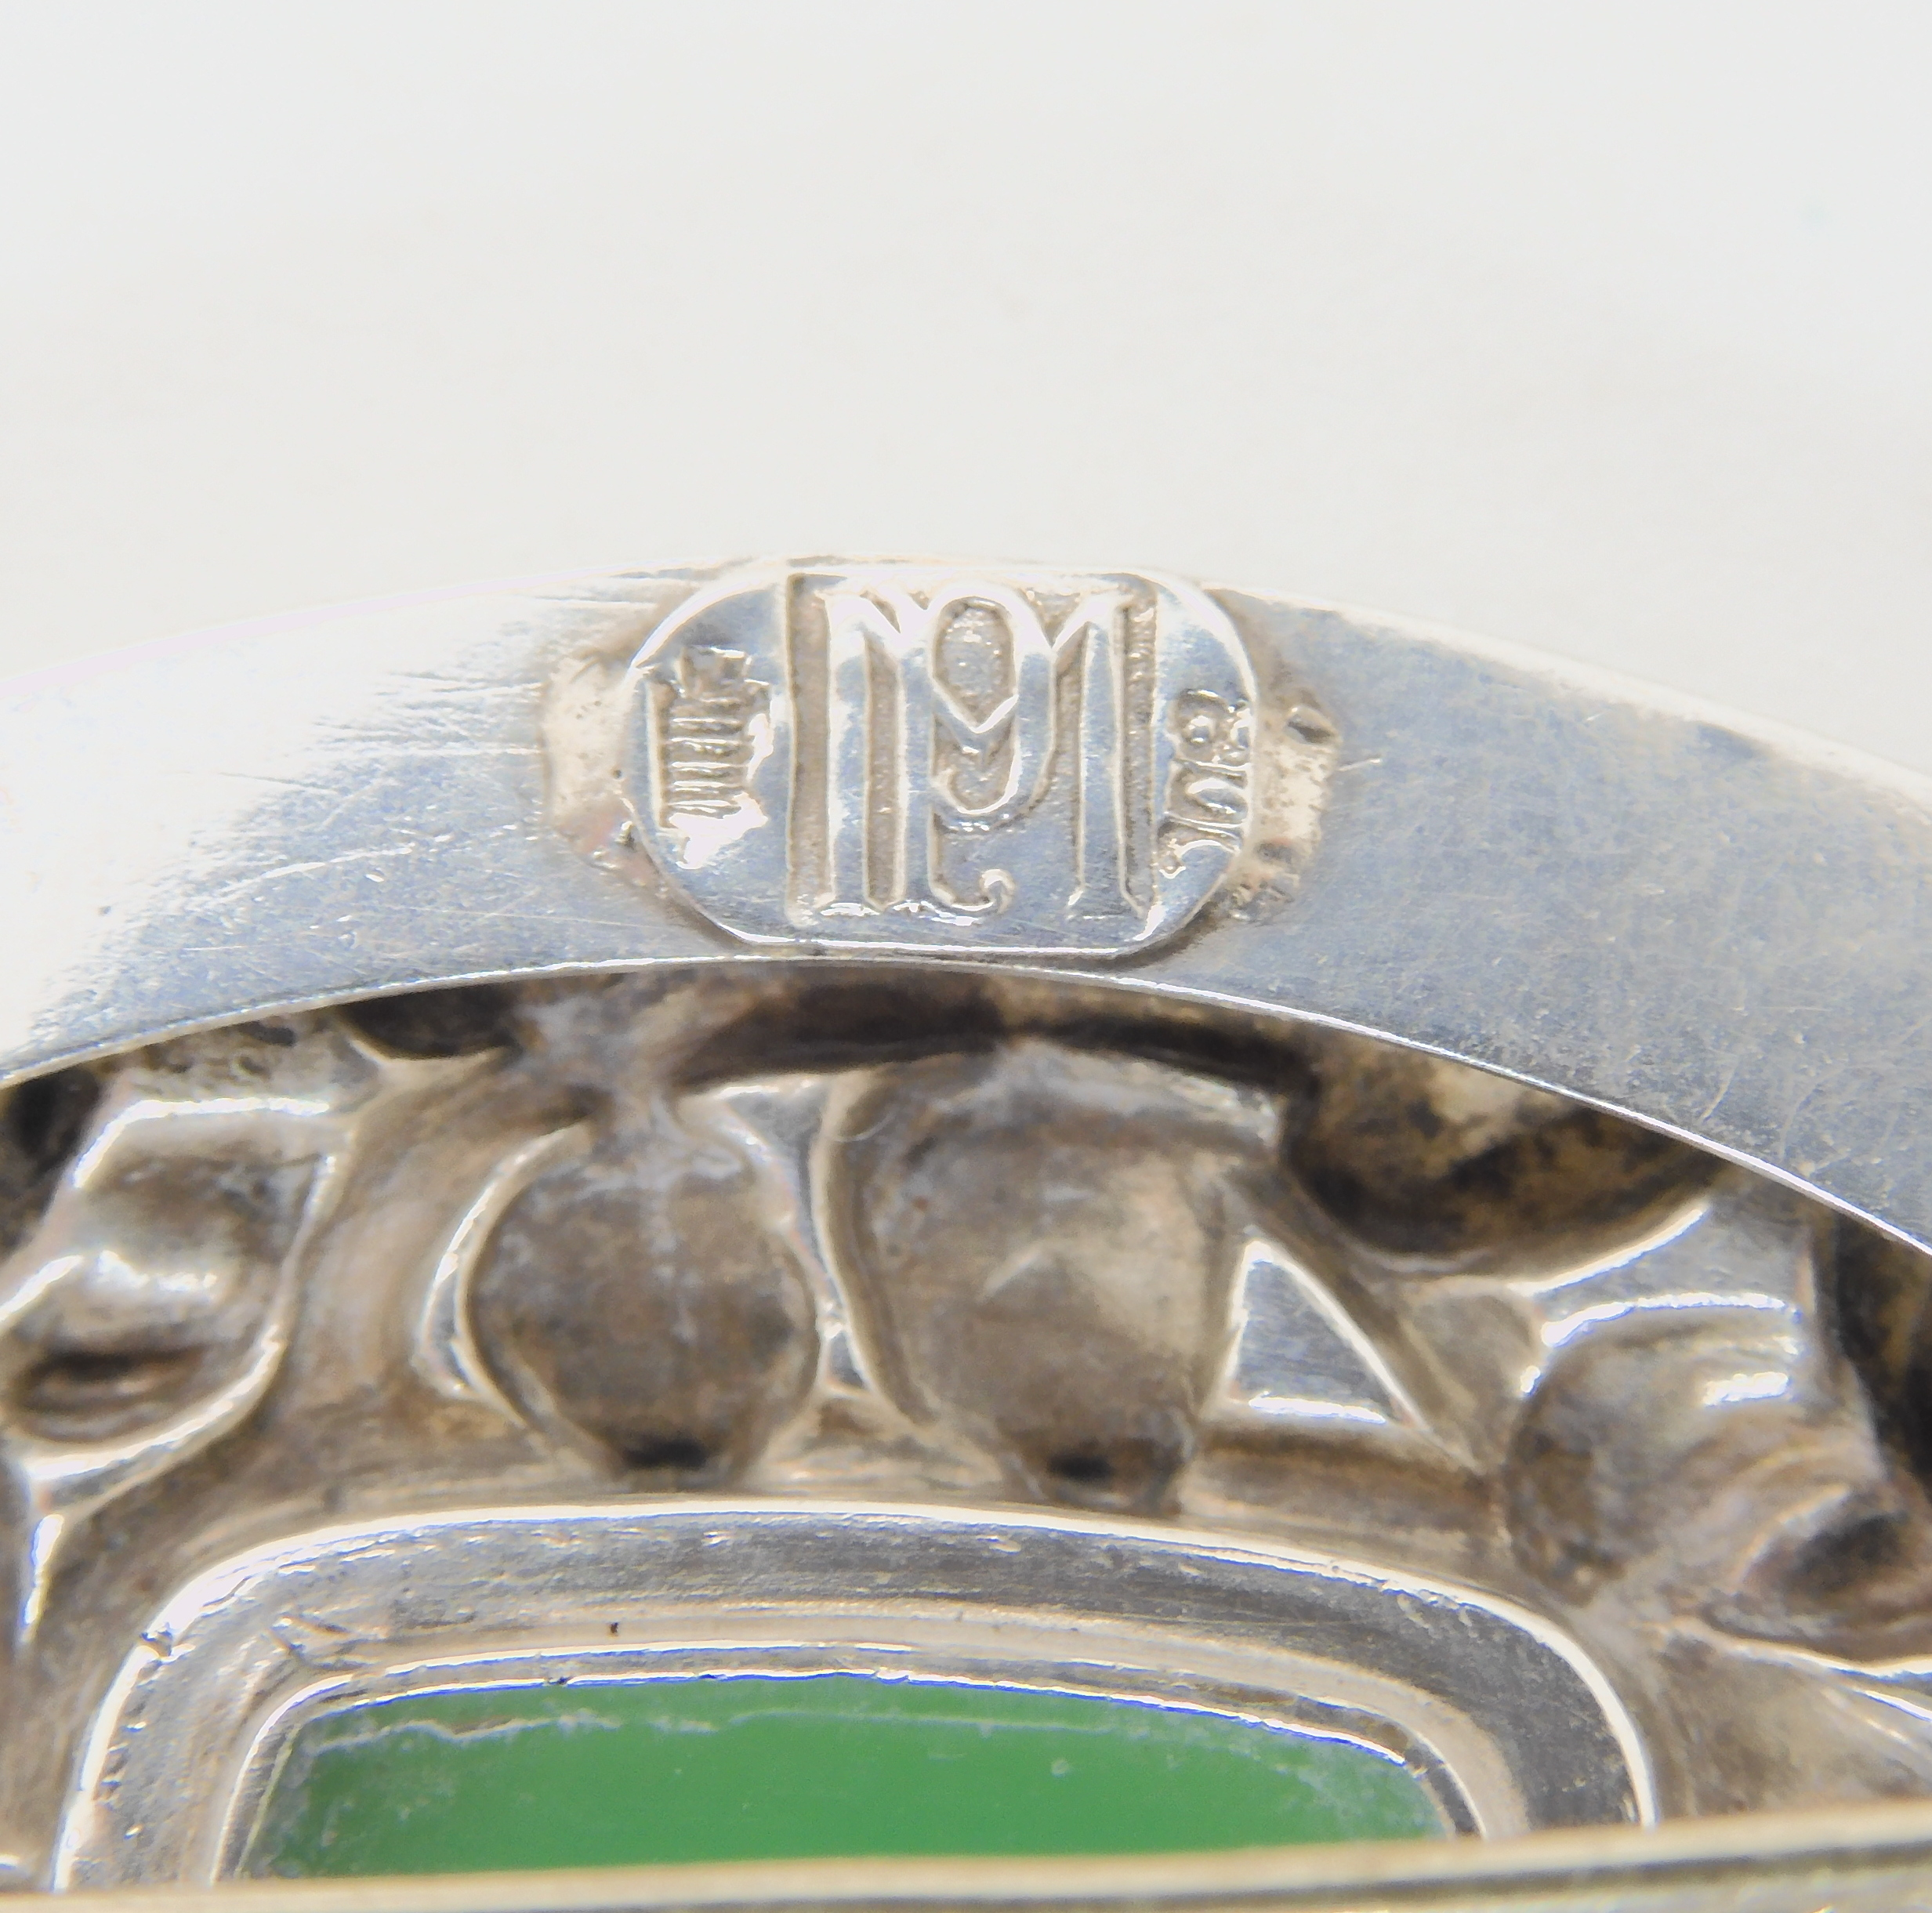 AN ART NOUVEAU BROOCH ATTIBUTED TO MAYER OF PFORZHEIM embossed with with jugendstil roses and set - Image 3 of 3